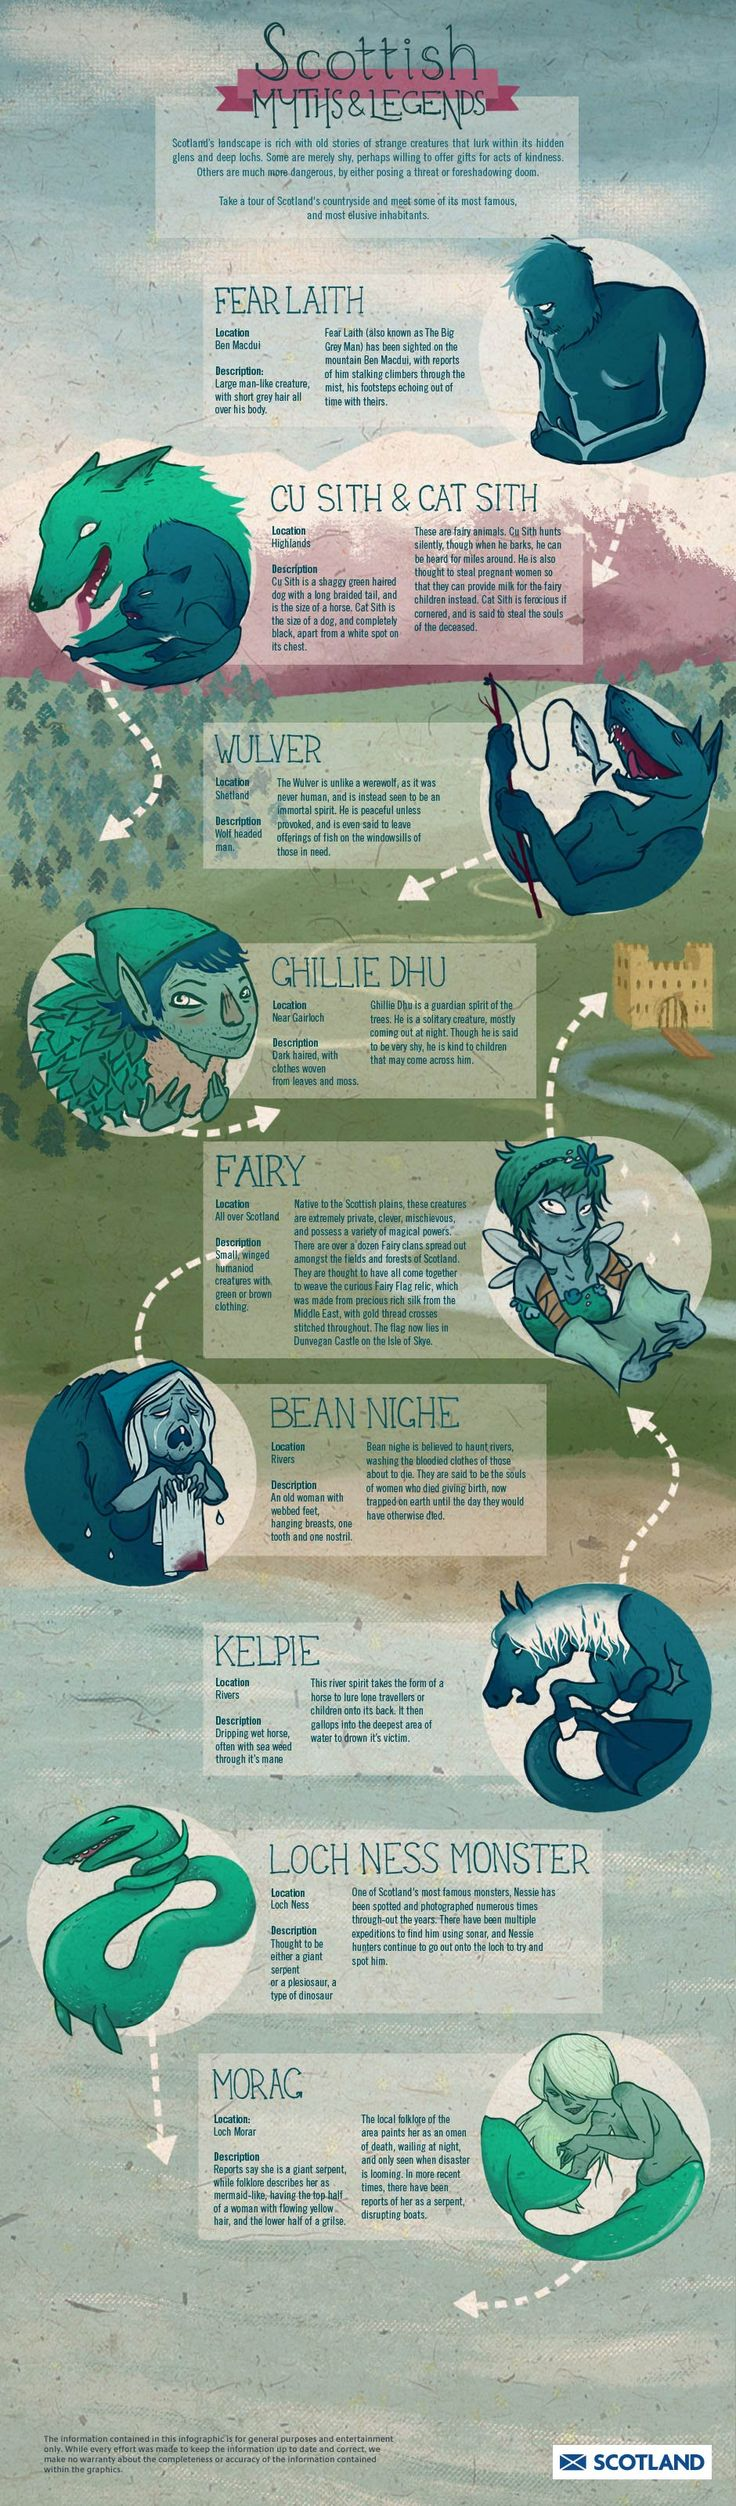 Scottish Myths and Legends -Infographic (Fairies, Loch Ness Monster and more)